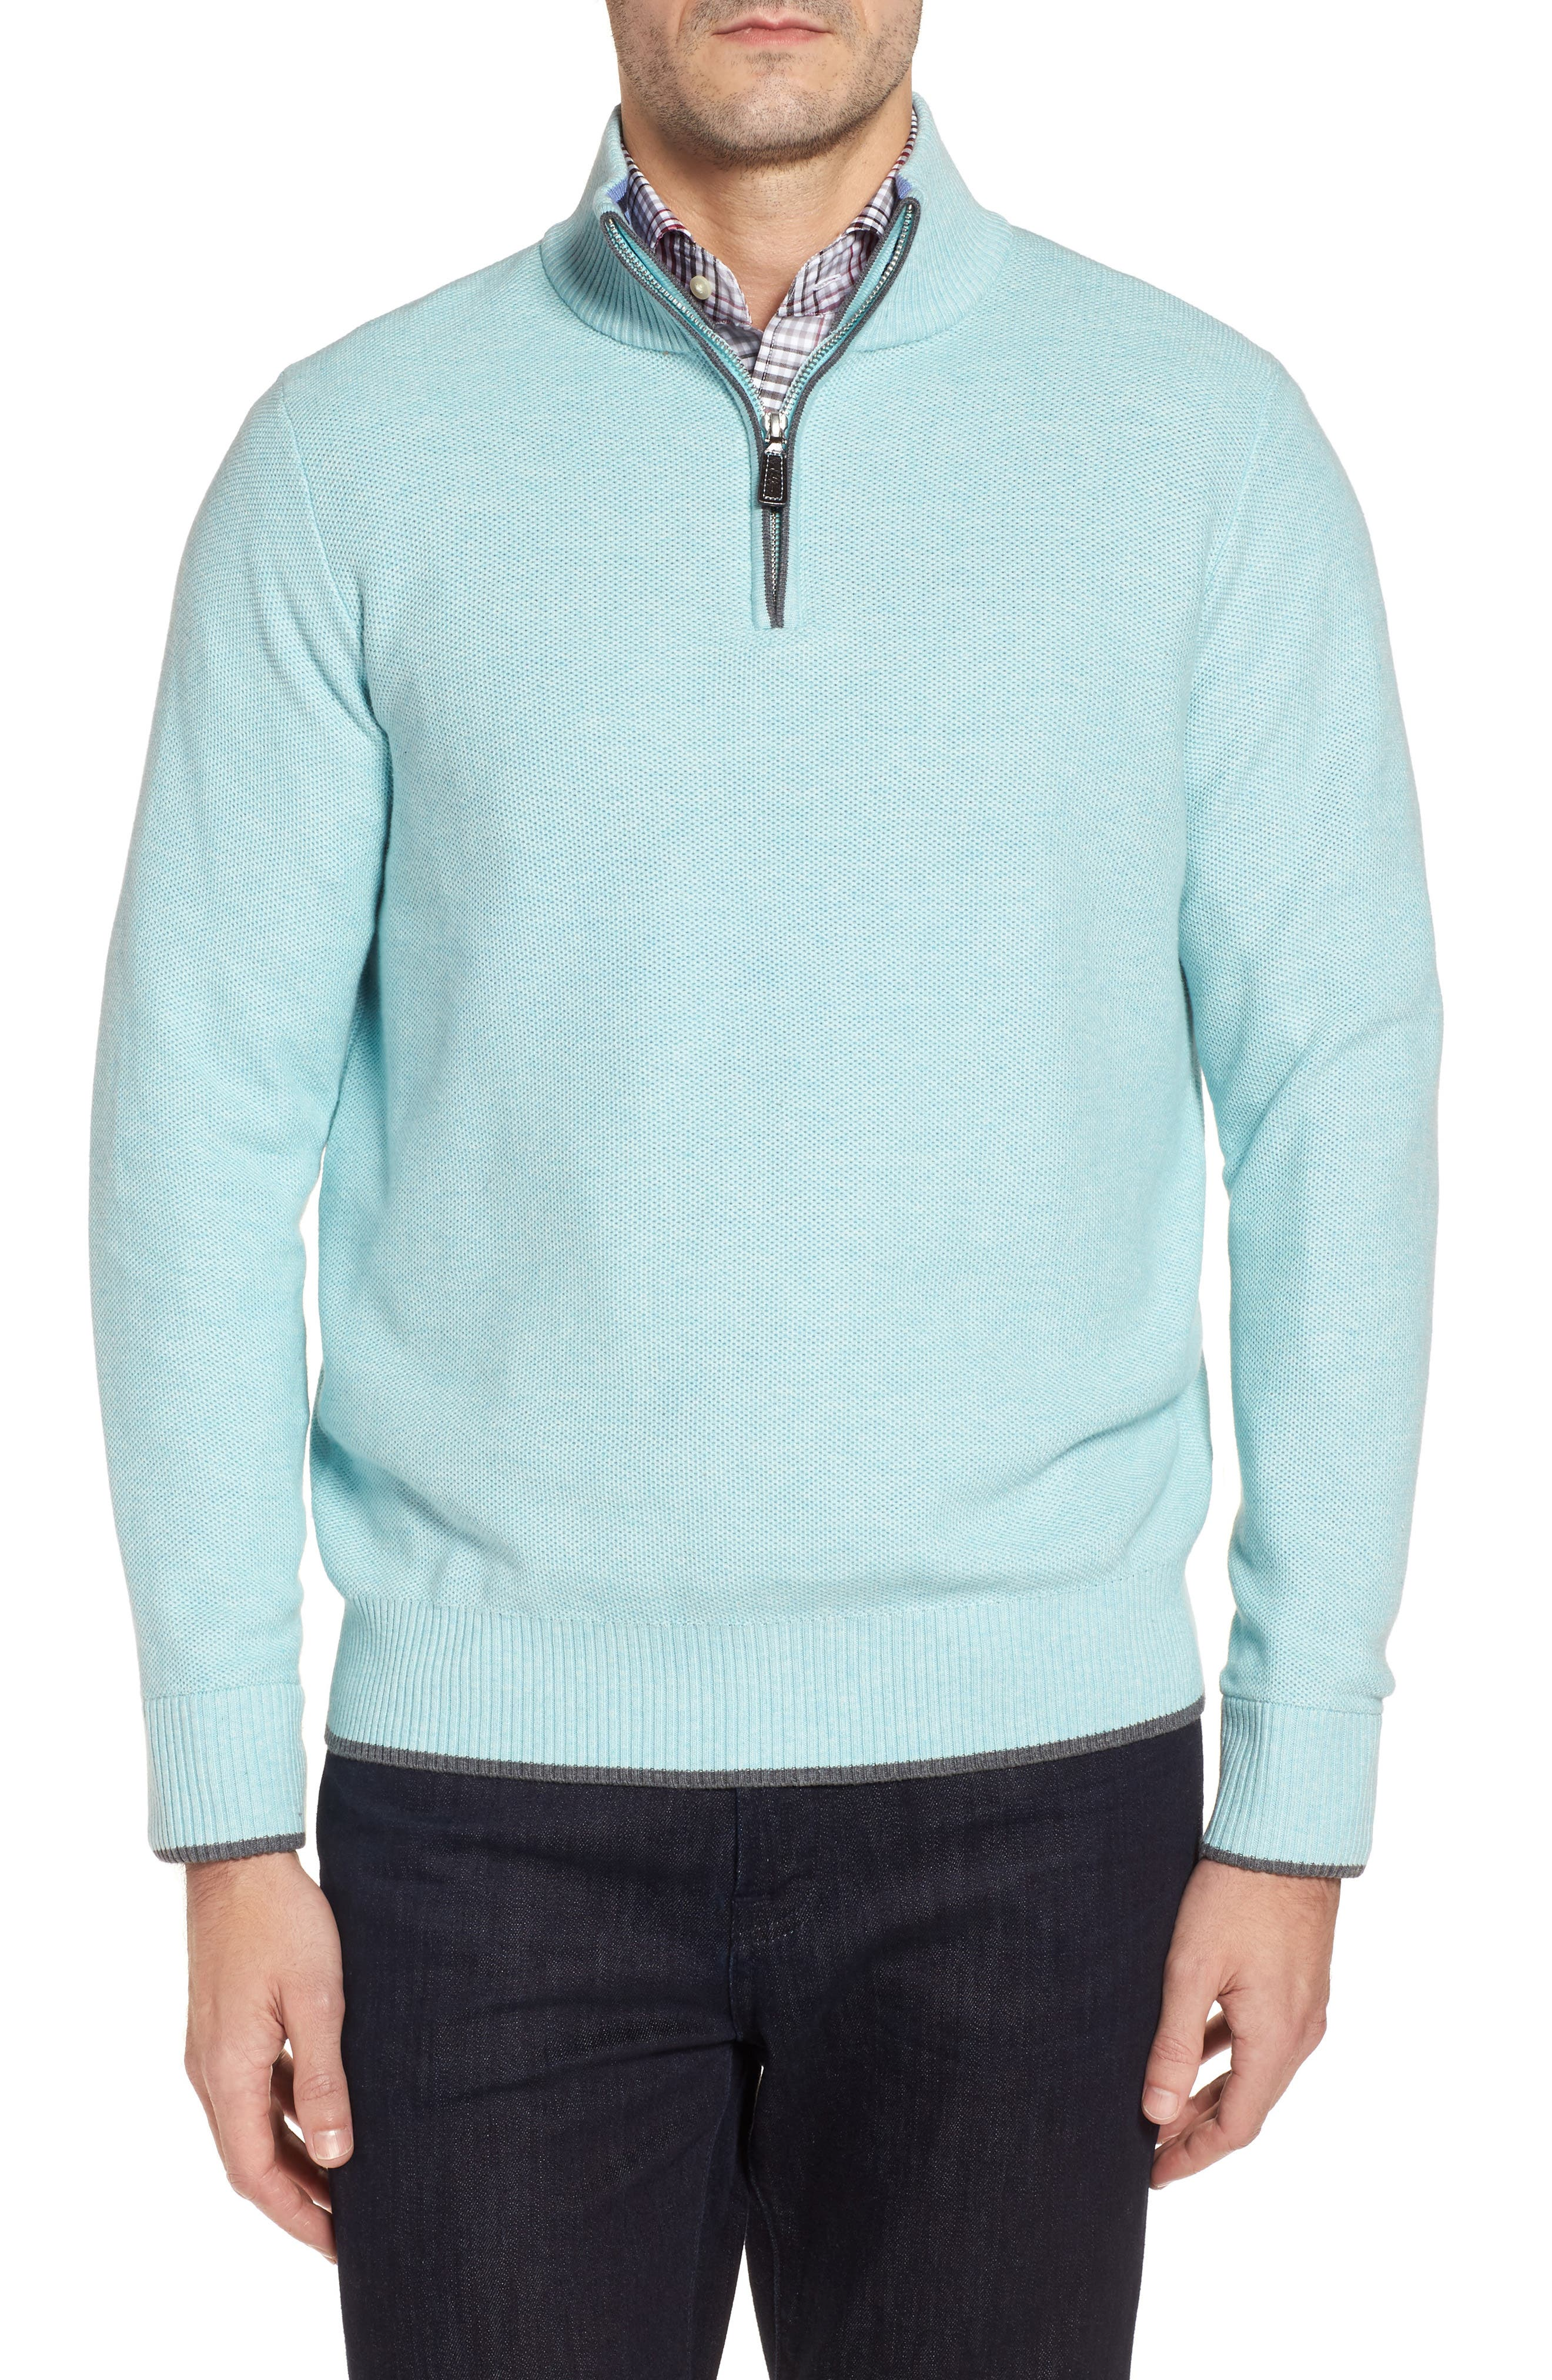 Main Image - TailorByrd Starks Tipped Quarter Zip Sweater